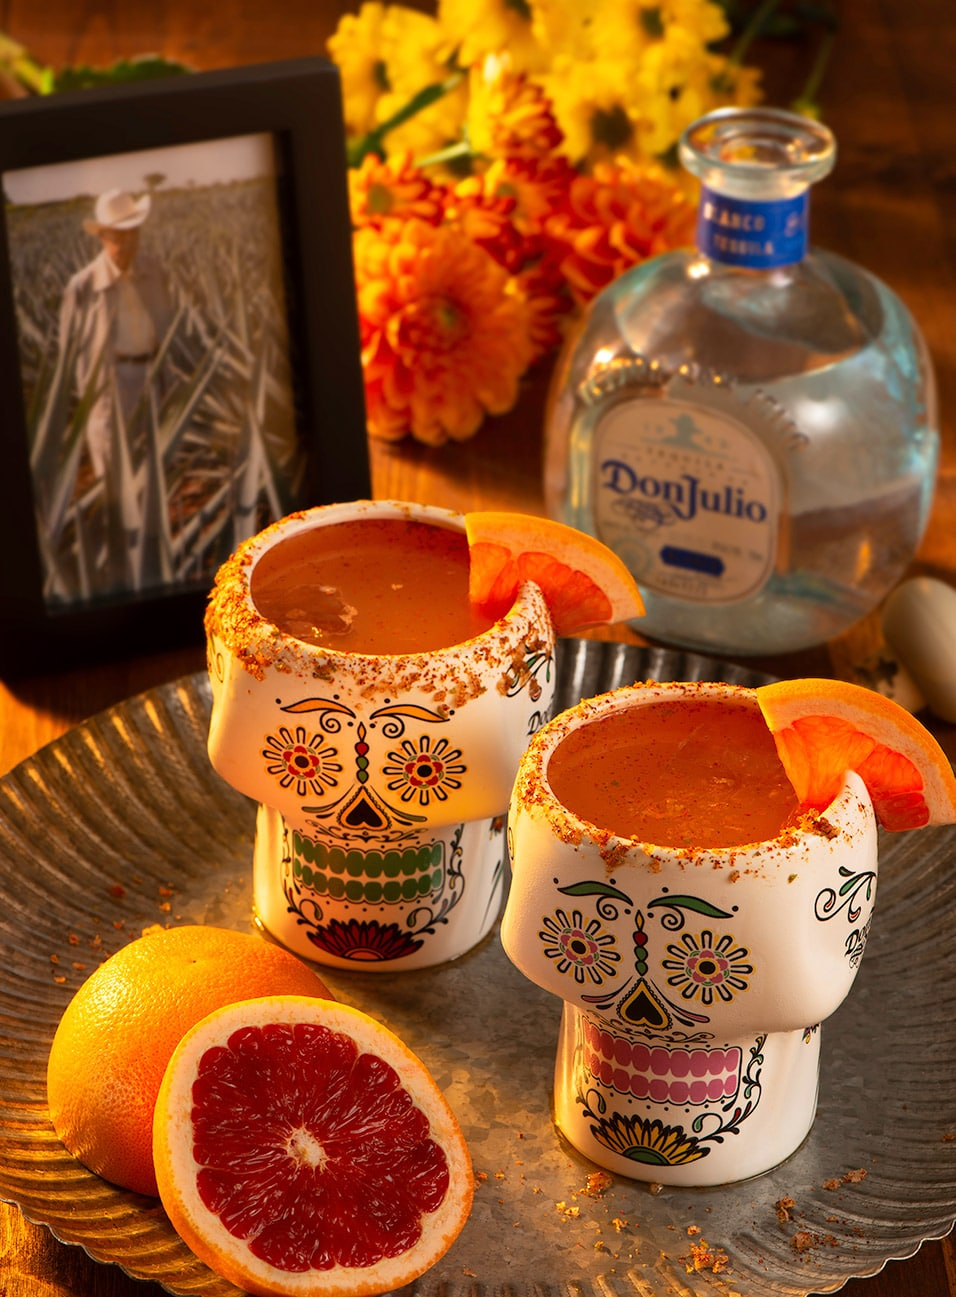 Blood Orange cocktail drink made with Don Julio® Blanco Tequila